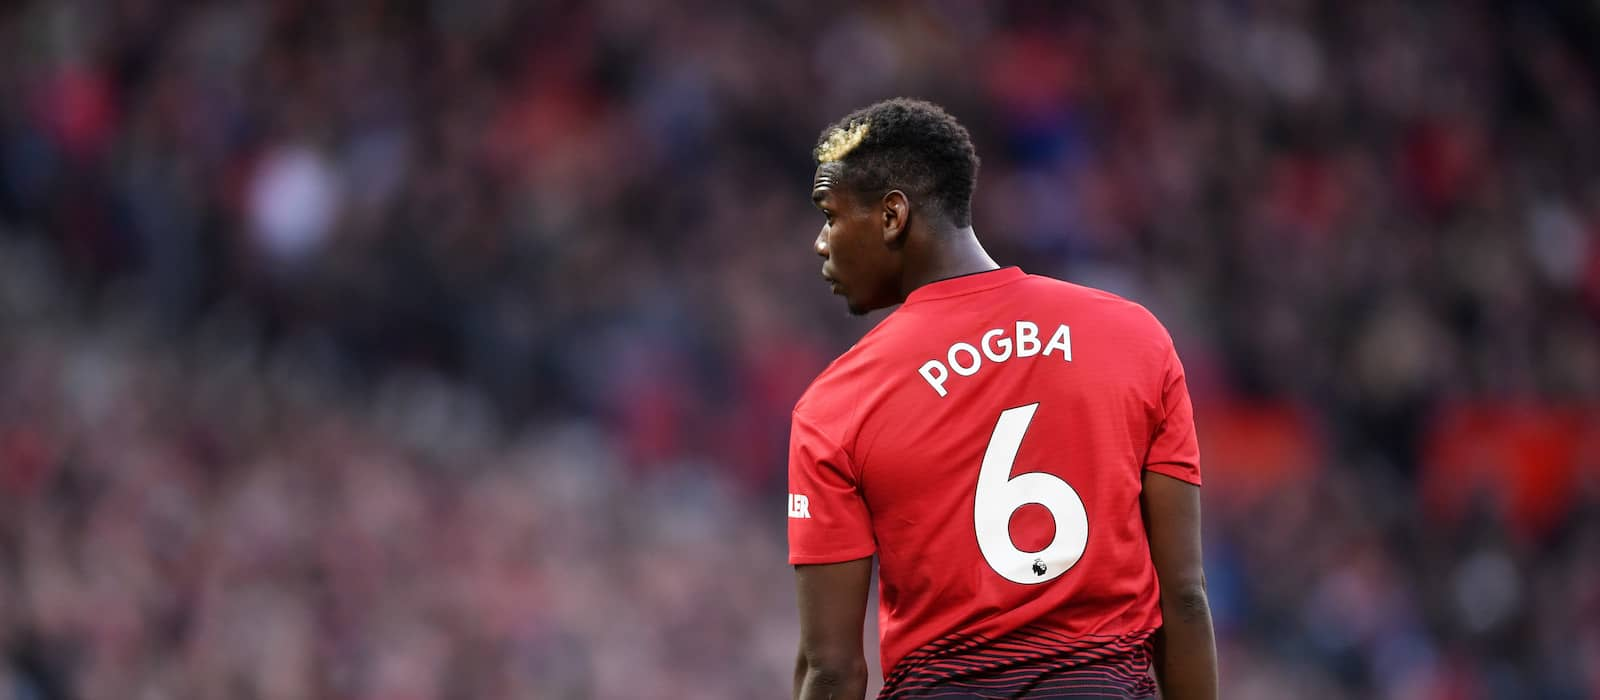 Louis Saha explains why Pogba was wrong to speak out against Jose Mourinho recently